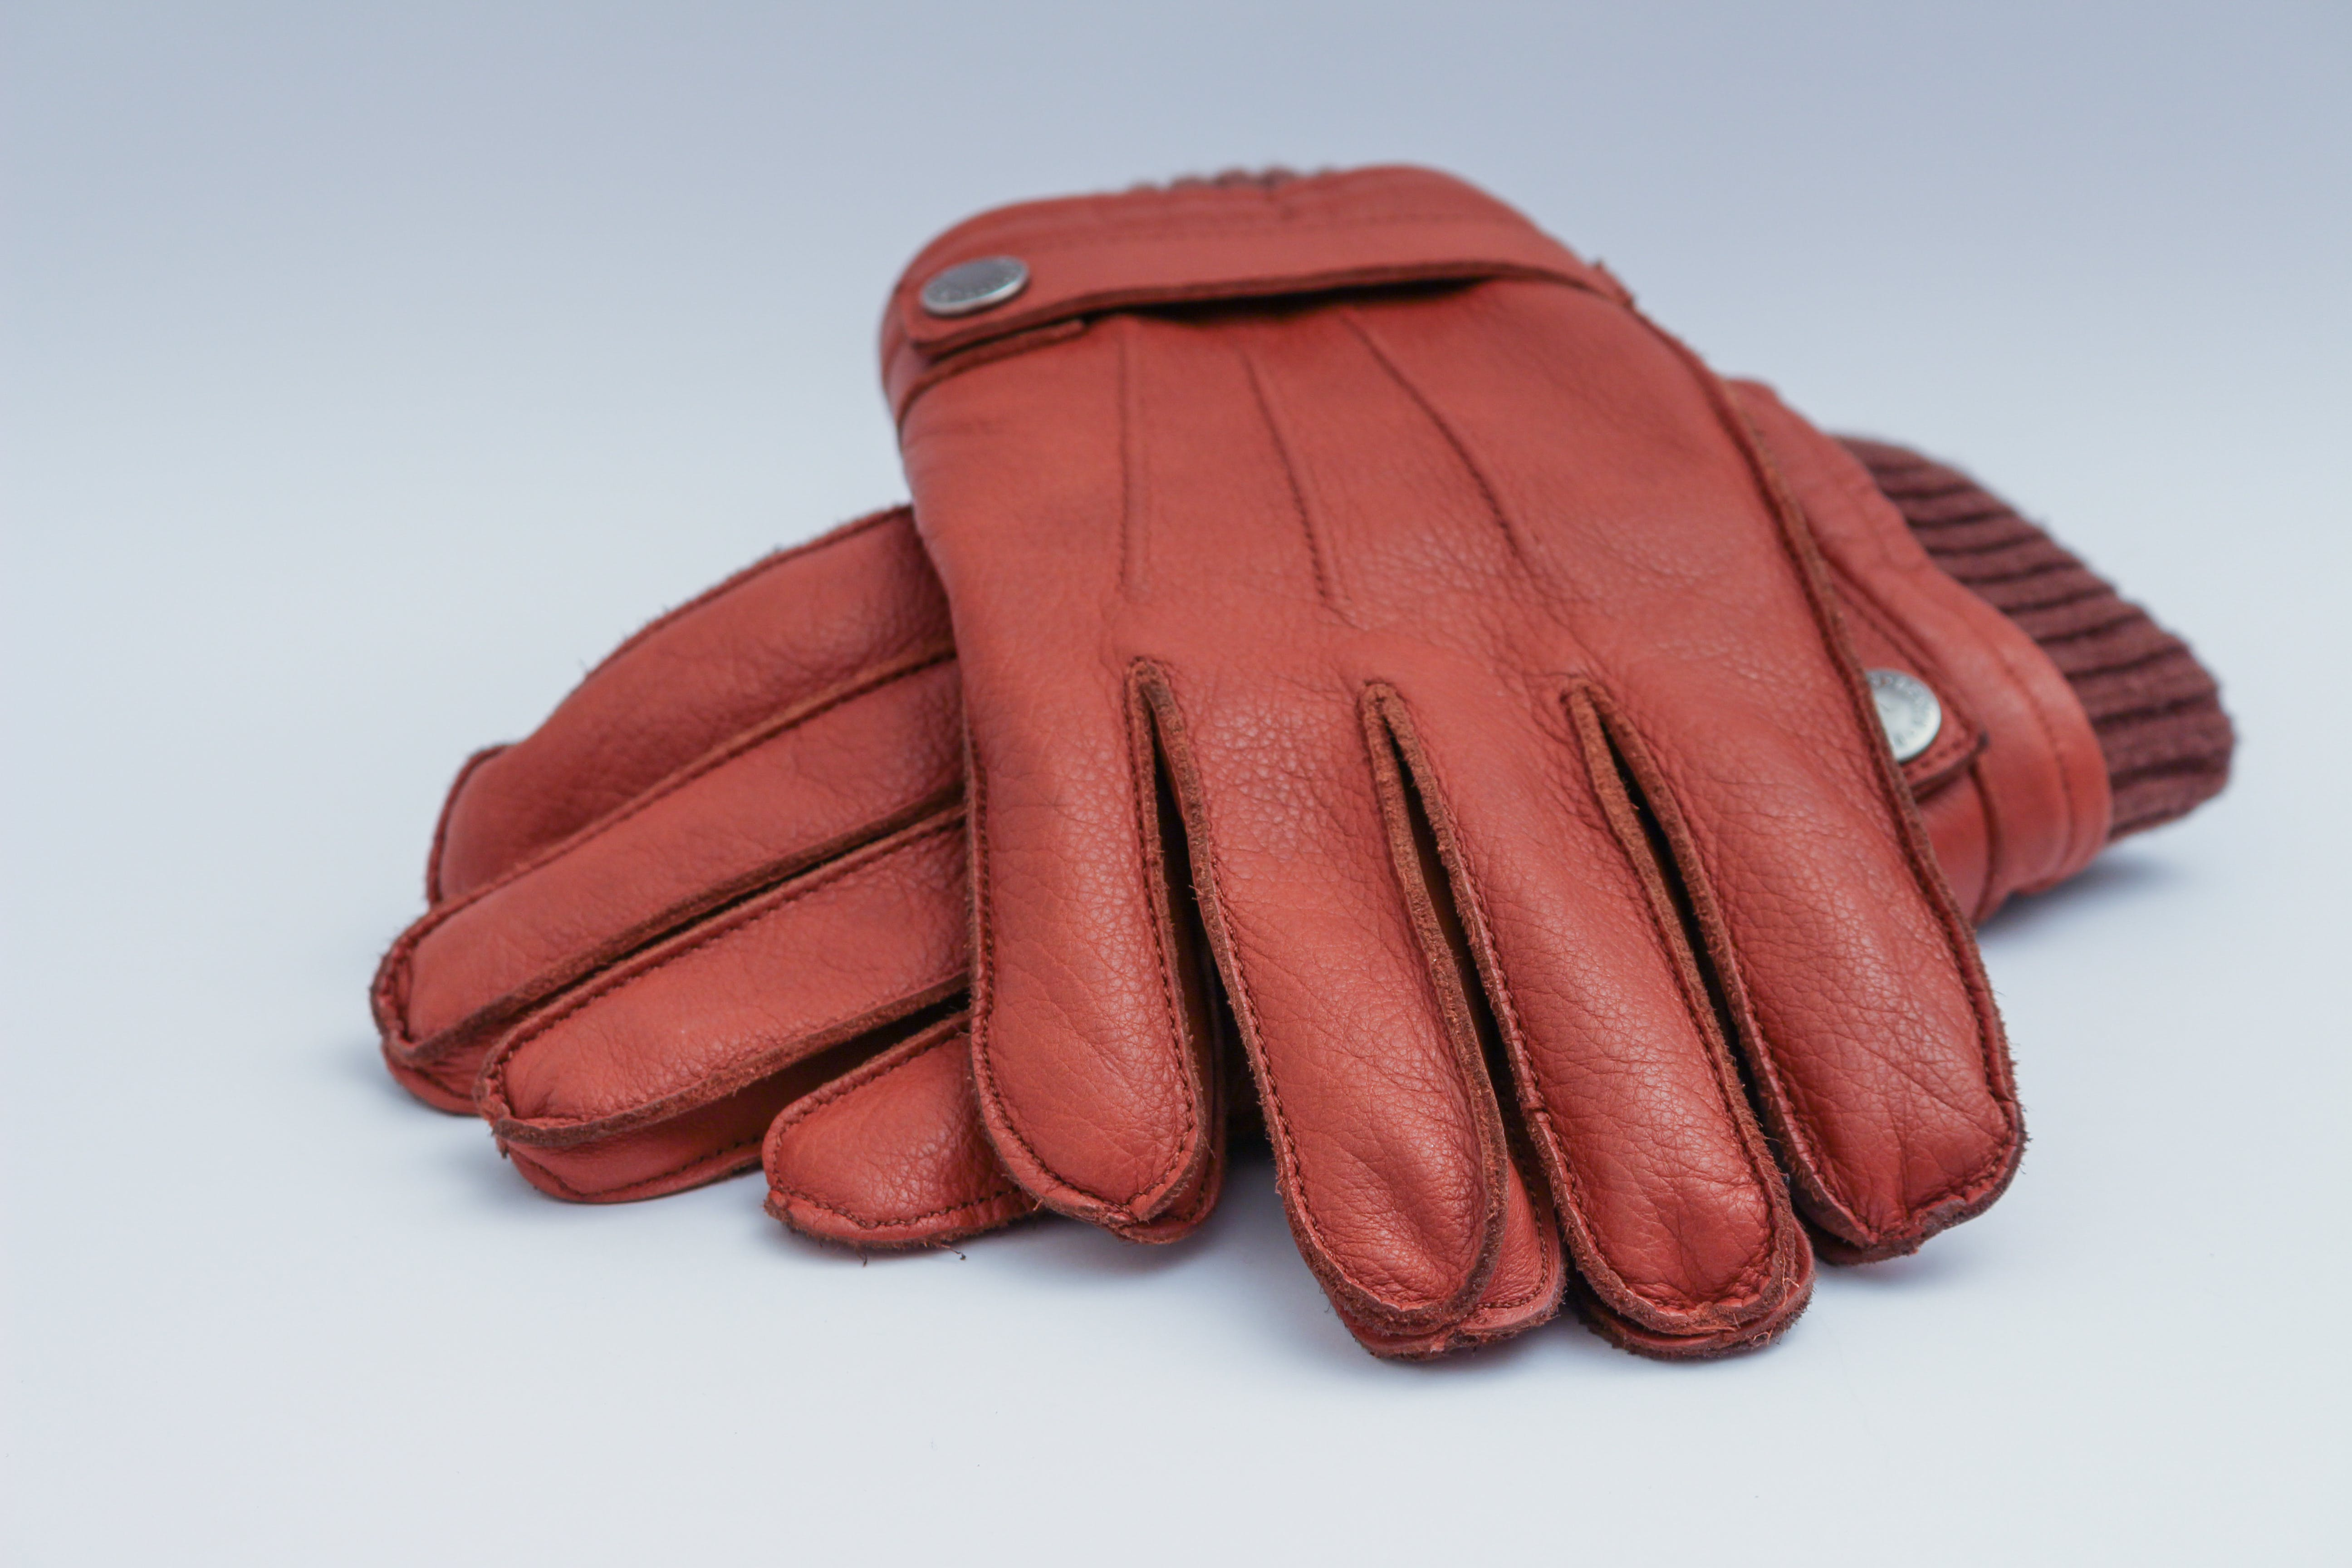 Pair of Brown Leather Gloves Illustration